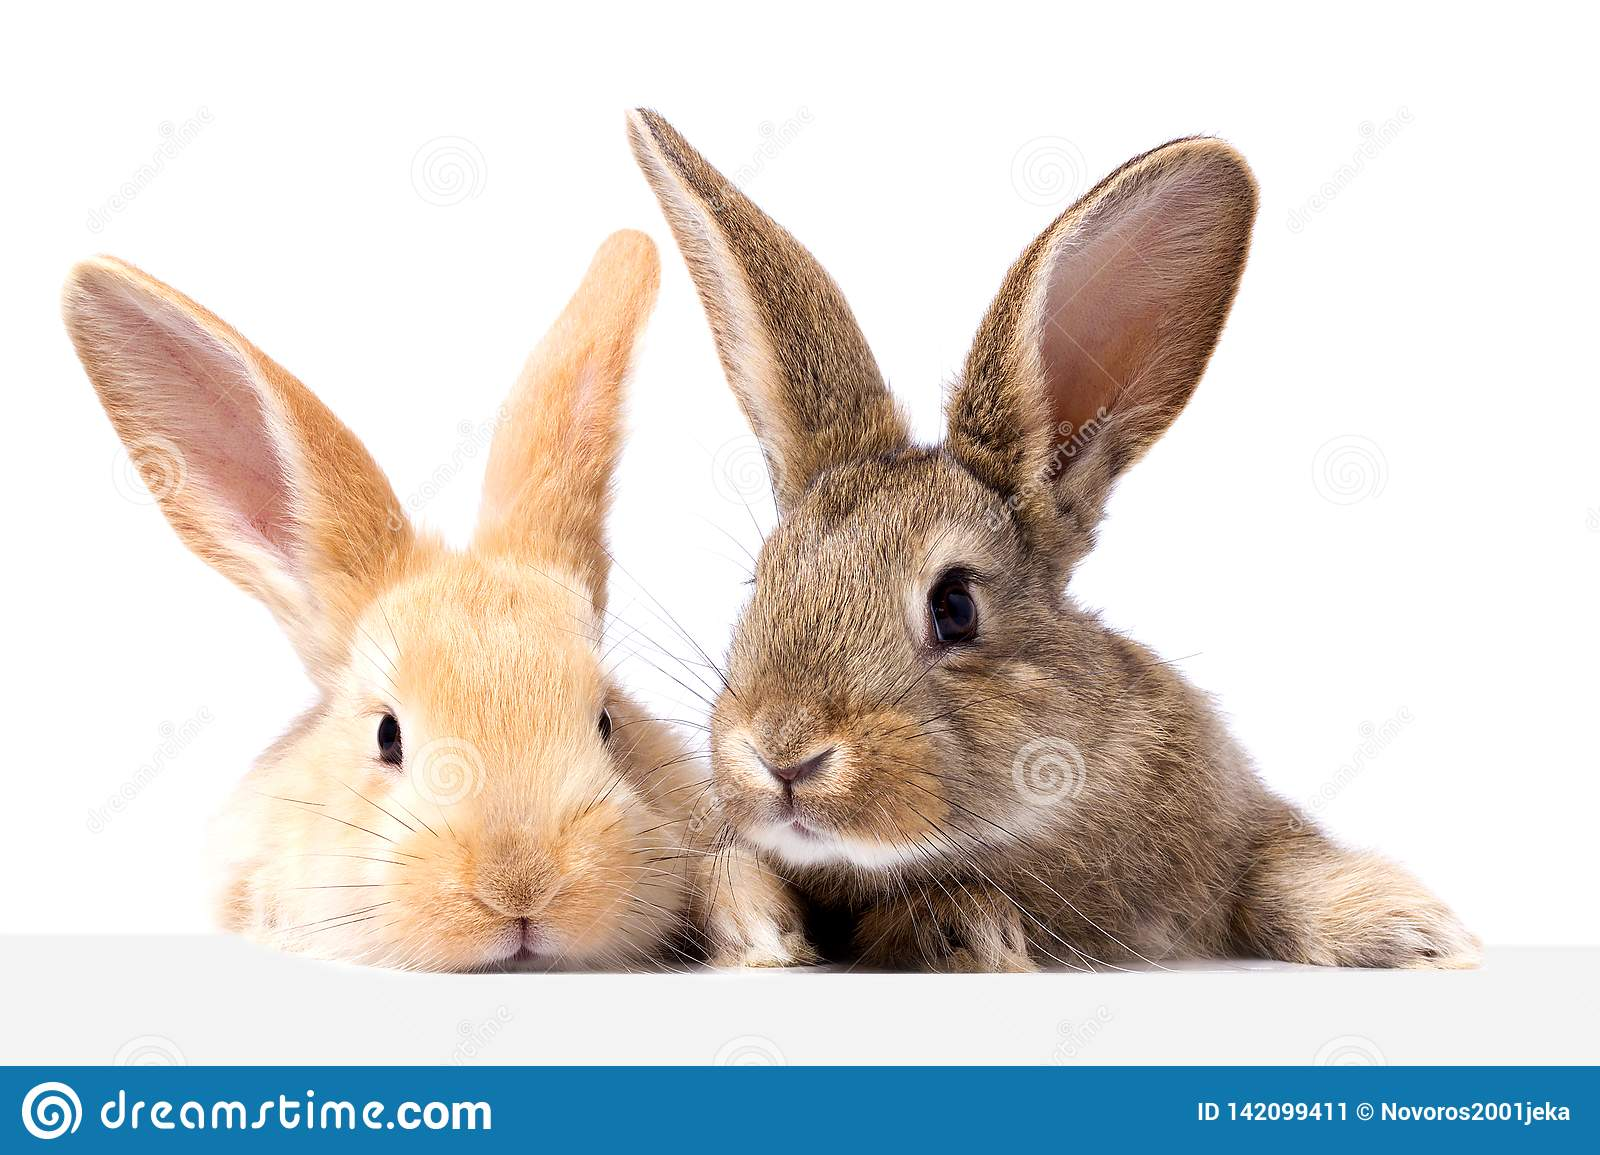 Two fluffy bunnies look at the signboard. Isolated on white background Easter Bunny. Red and gray rabbit peeking.